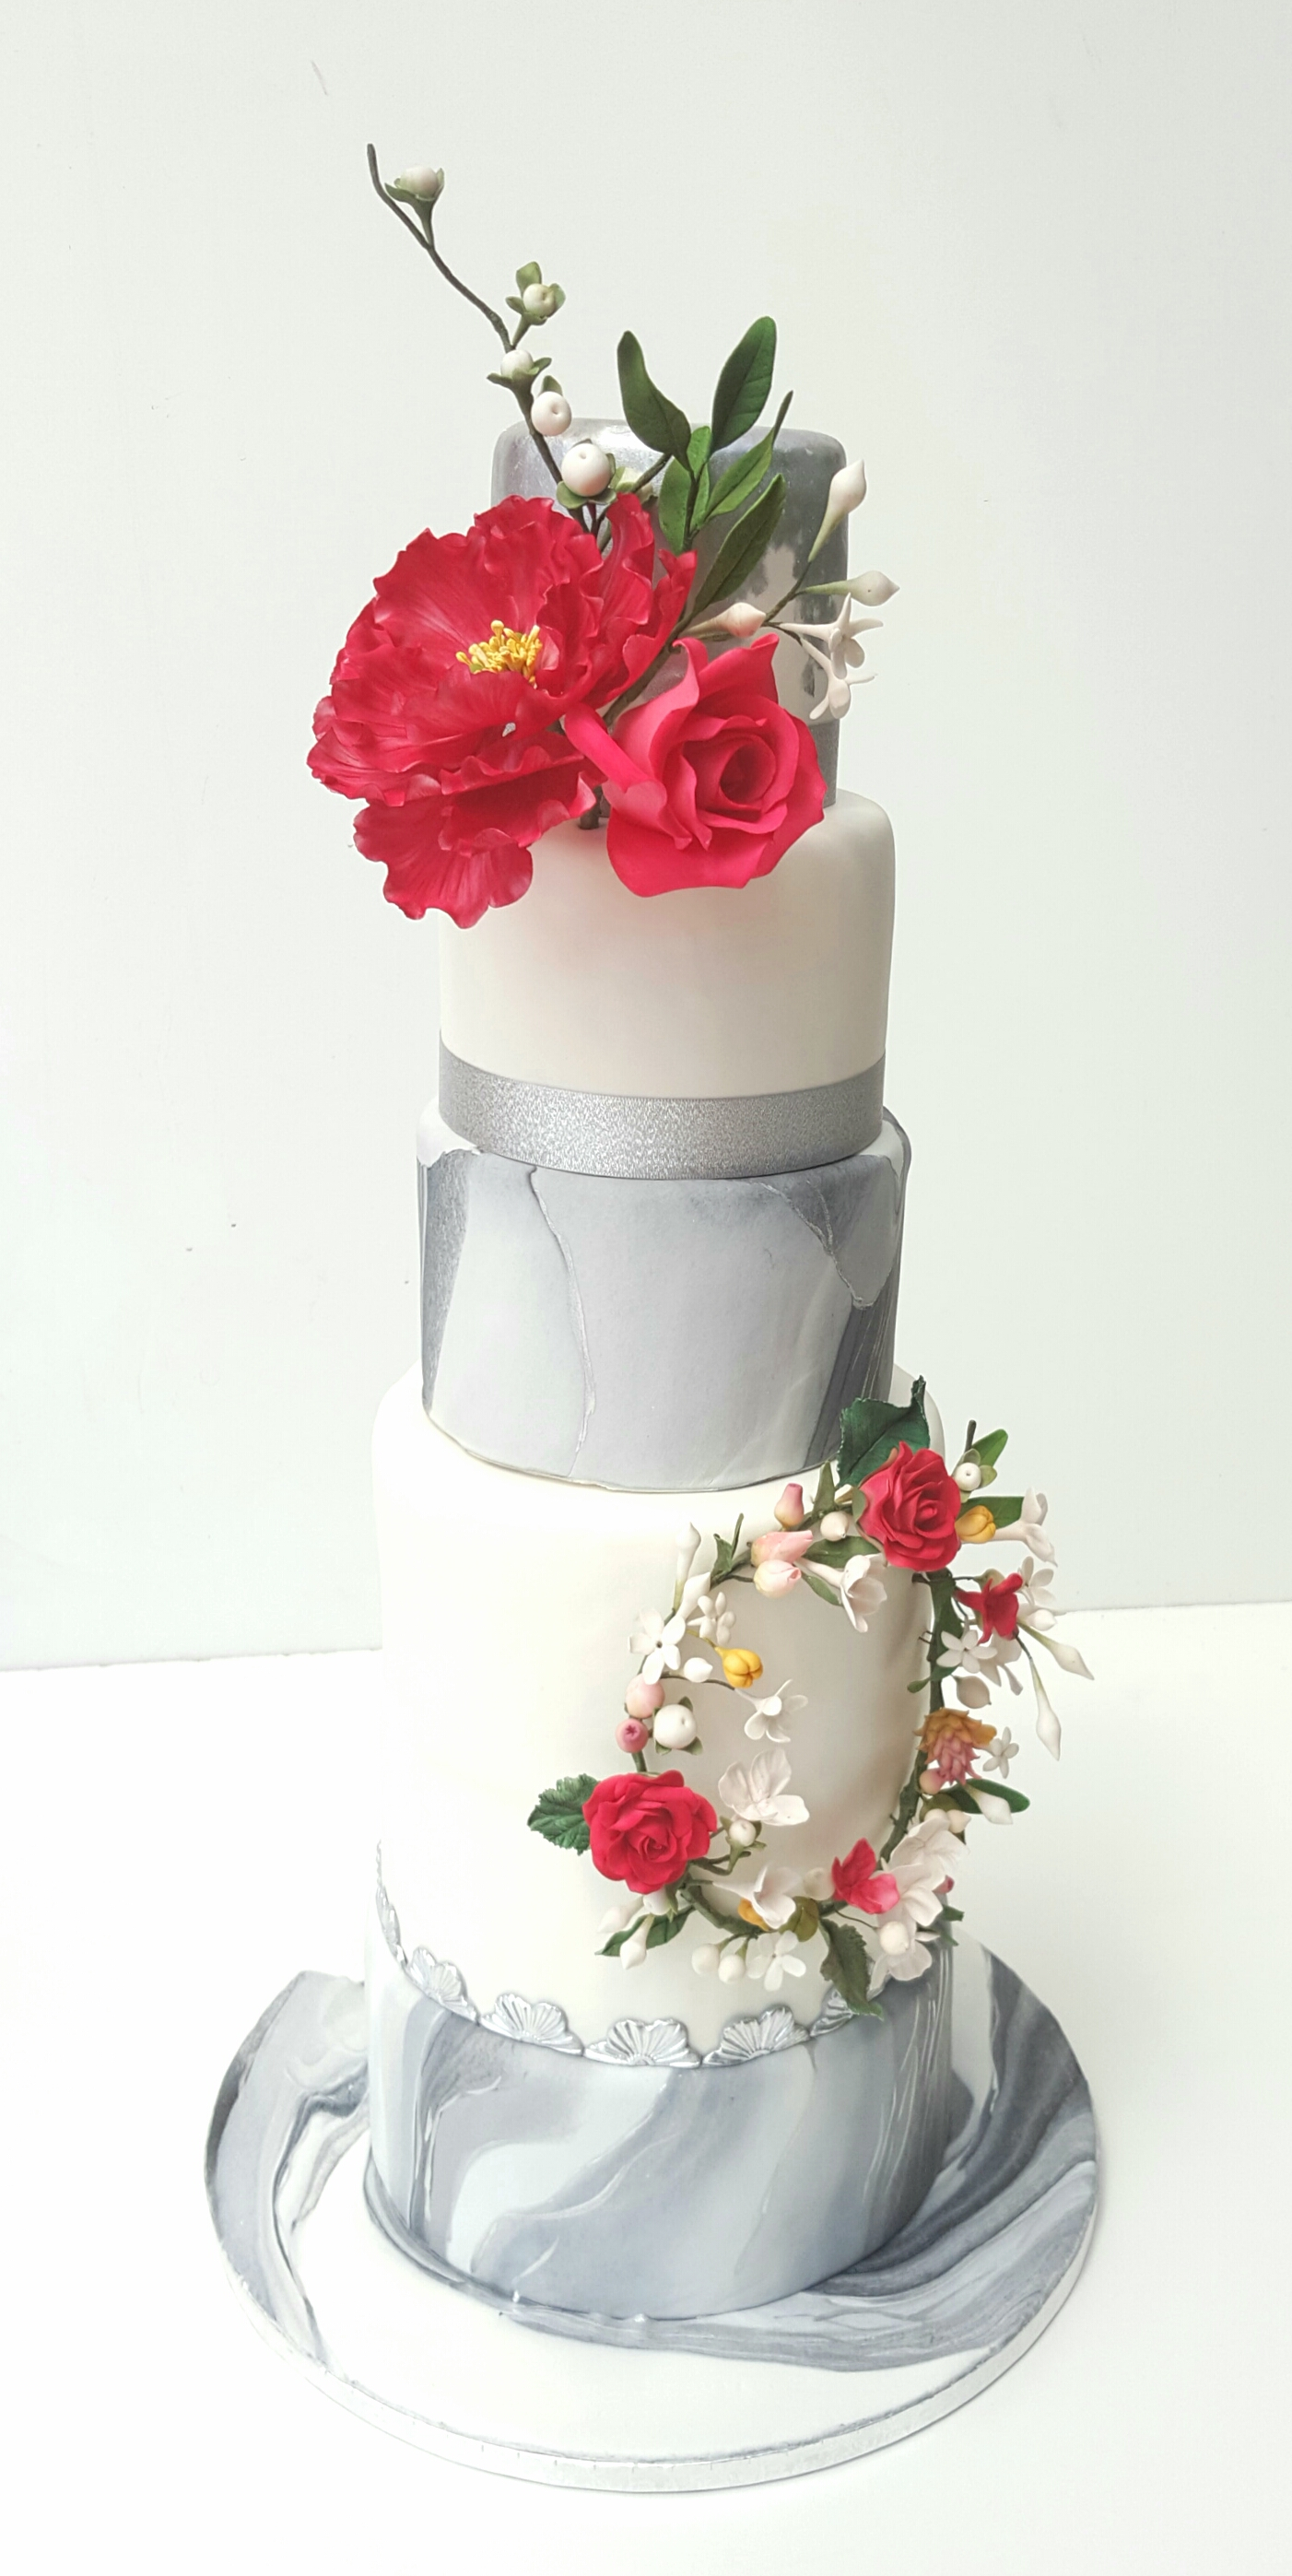 Gray and white marble wedding cake with red sugar flowers